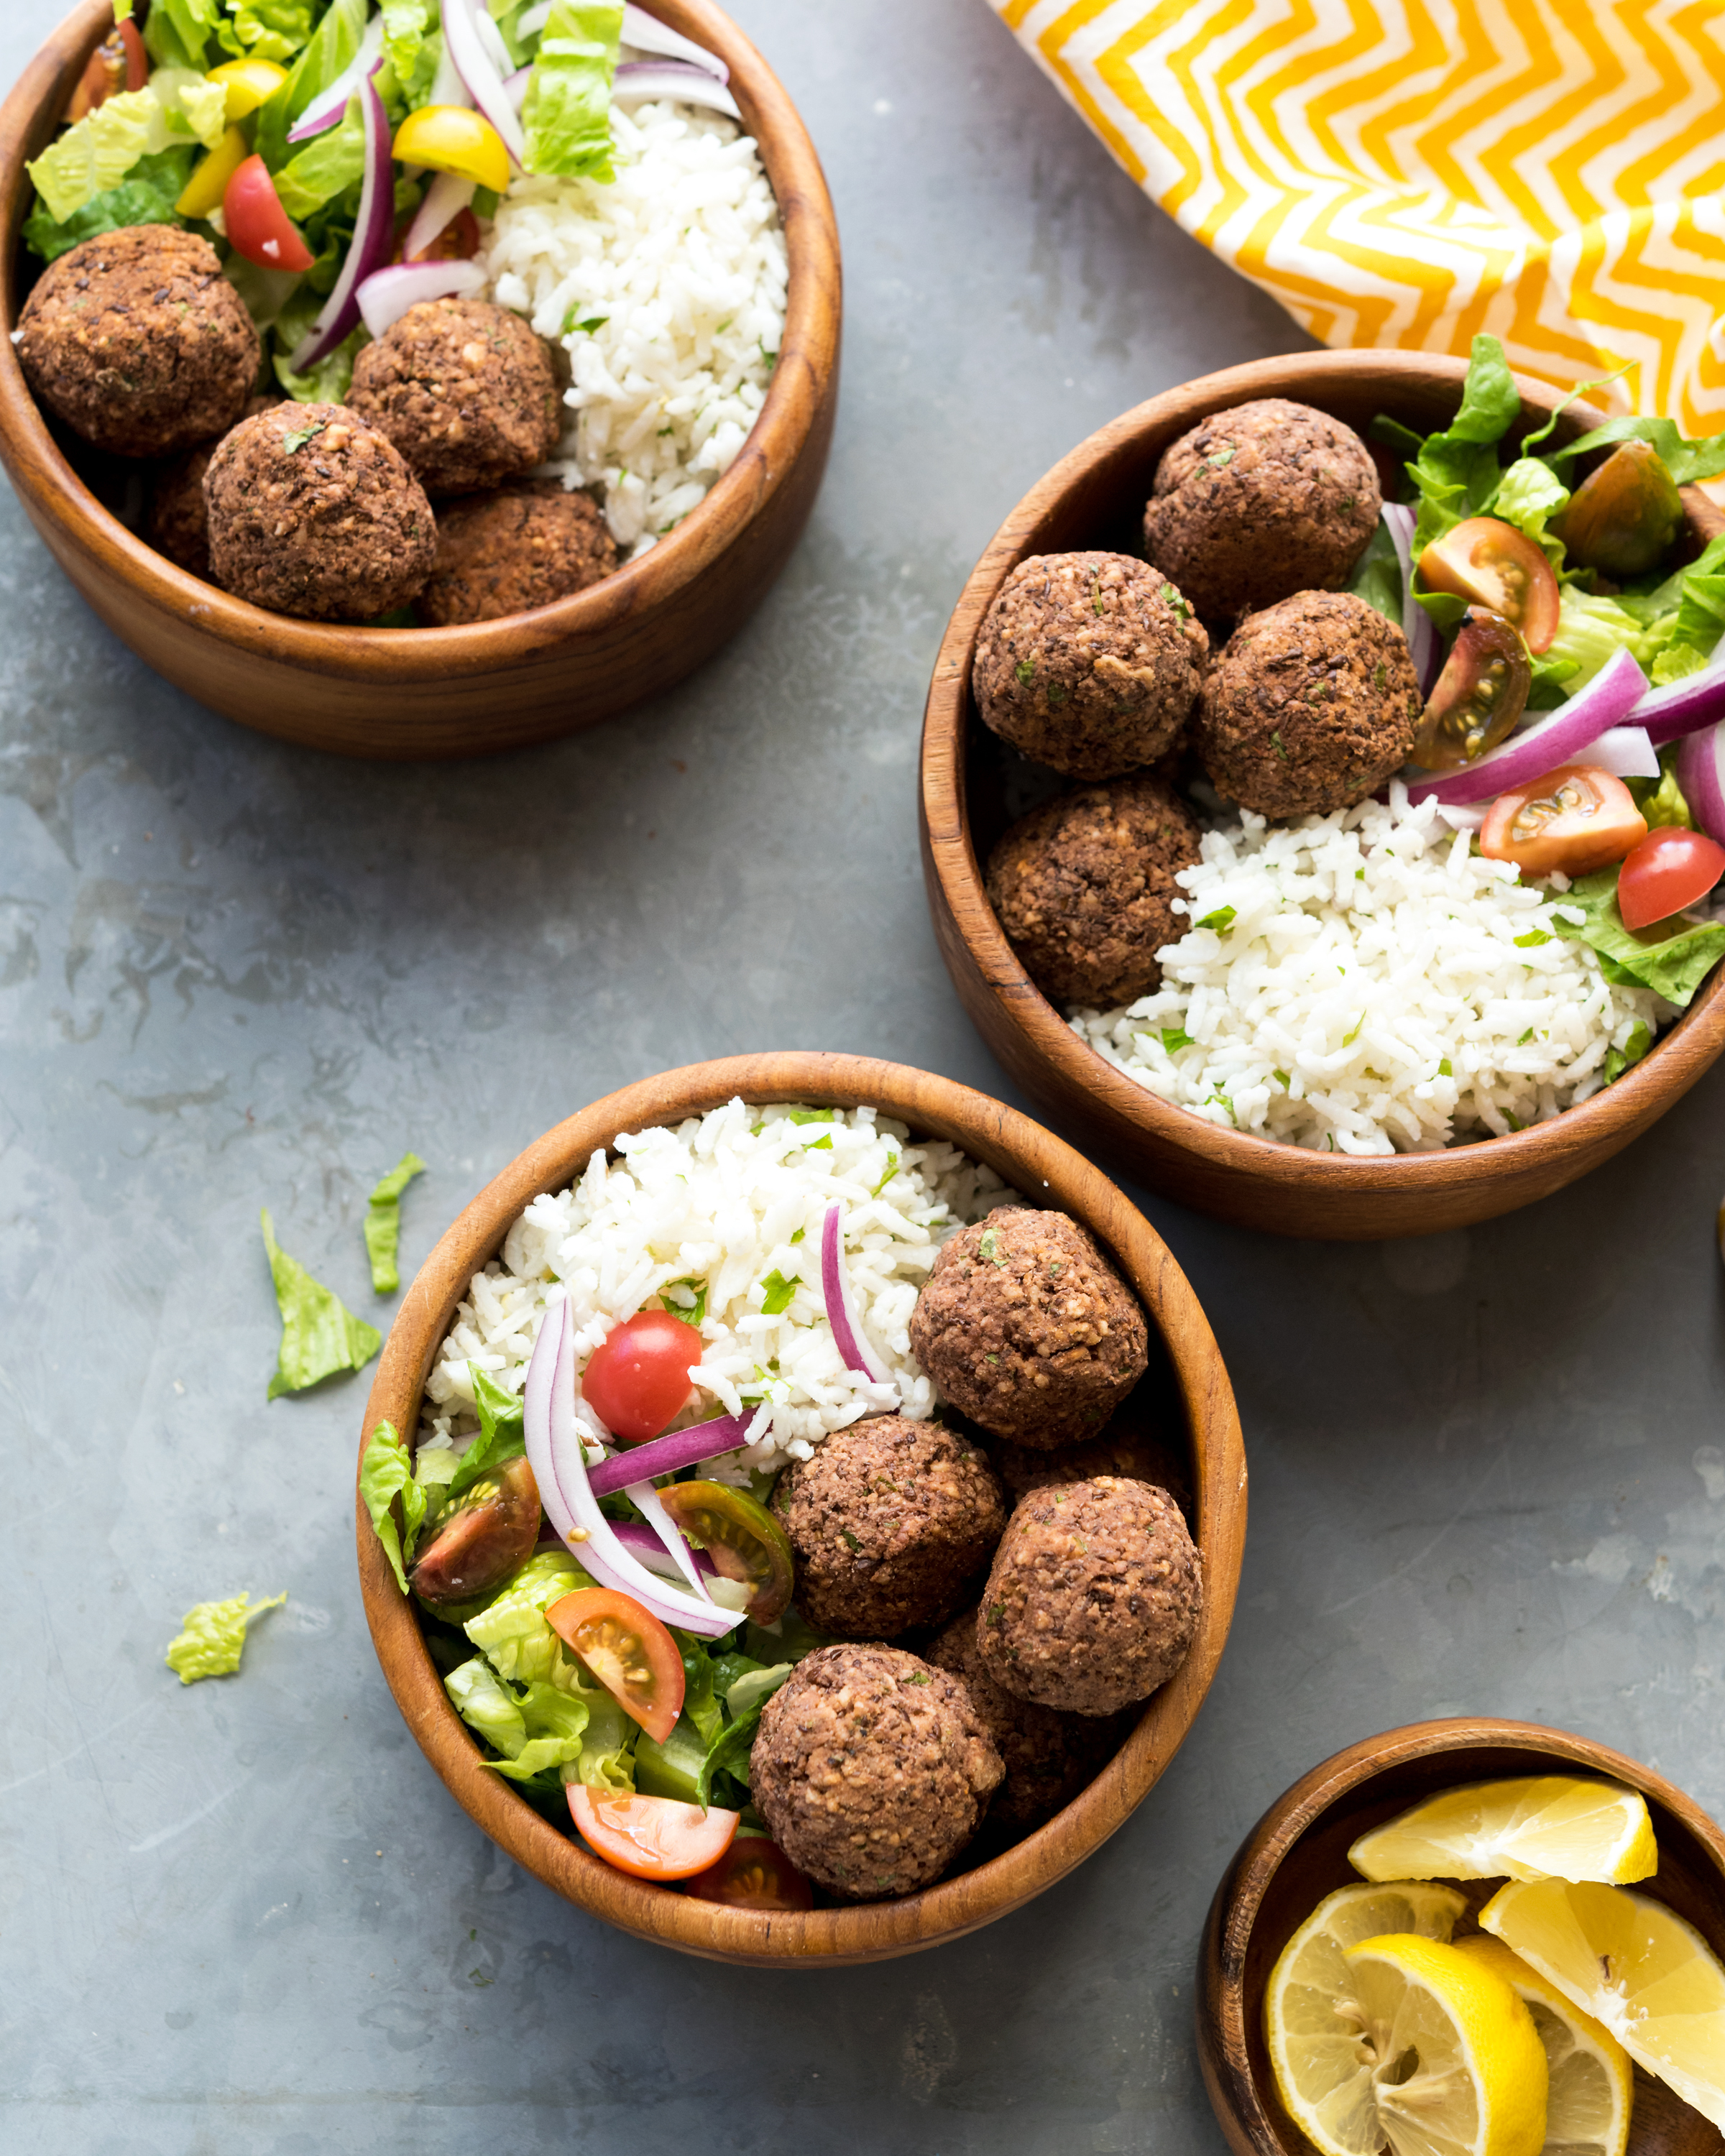 Delicious vegan lentil balls served with zesty rice. It is gluten-free, dairy-free, oil-free, and refined sugar free.